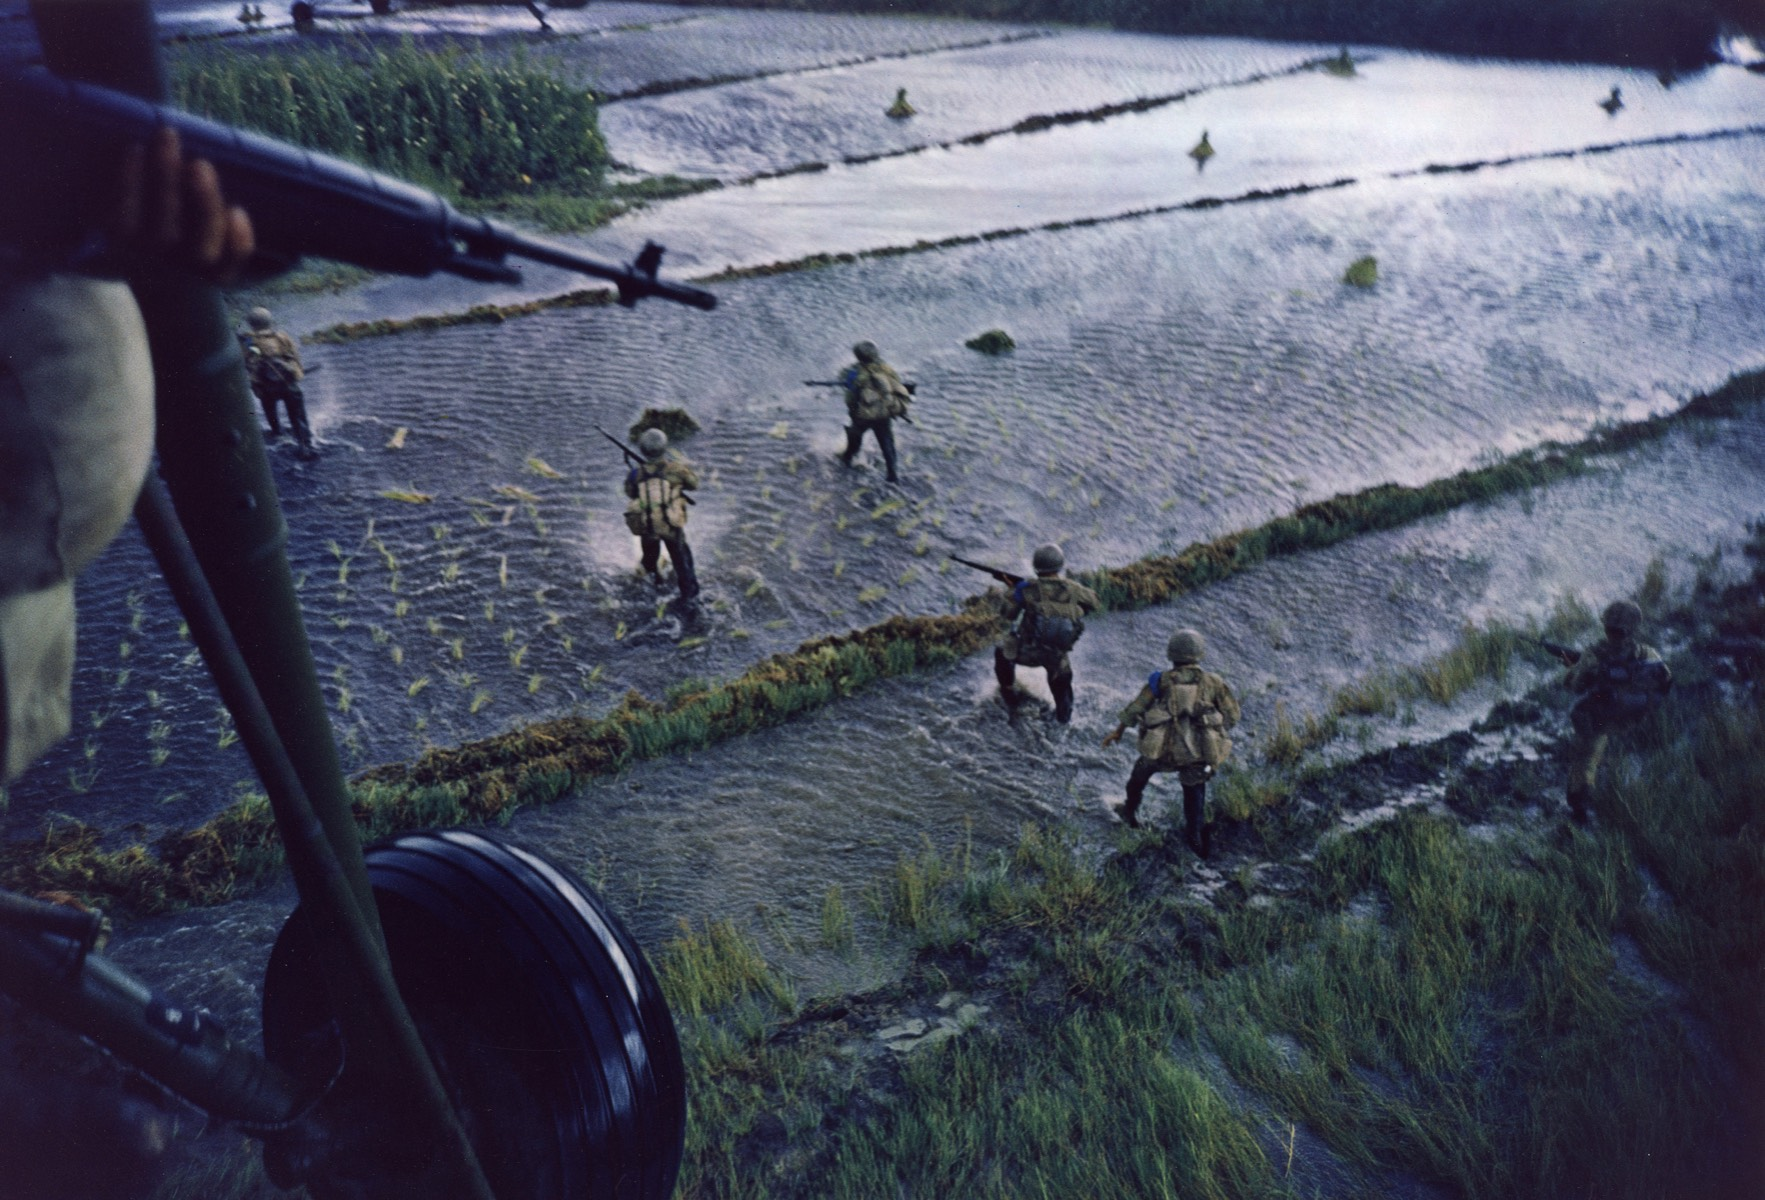 Dropping South Vietnamese Marines and Paratroopers, Mekong Delta, 1962 © Courtesy Laurence Miller Gallery and The Larry Burrows Collection